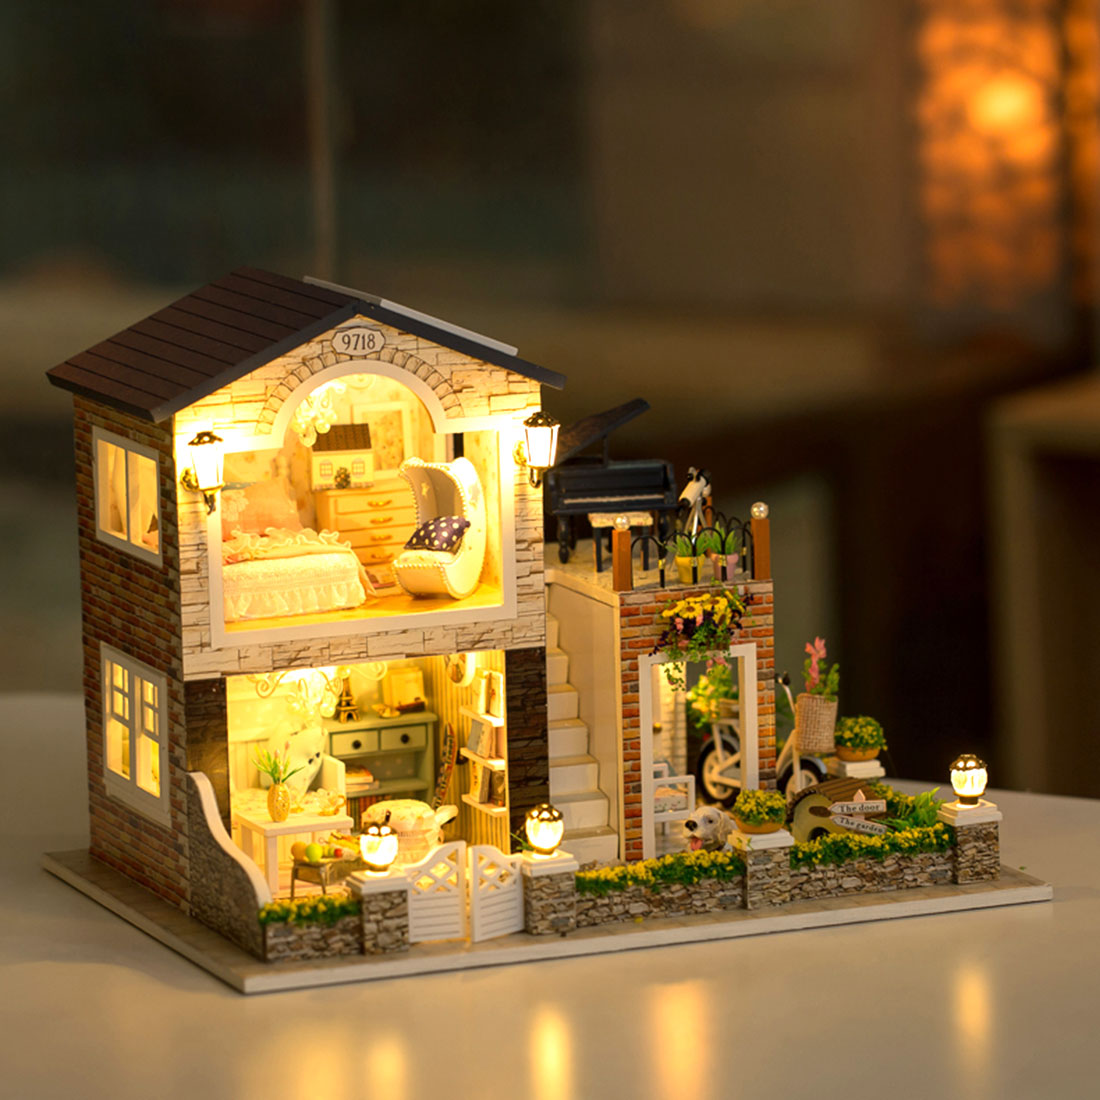 Wooden DIY Doll House Miniature Handmade Assembly Model House Toy With Light And Music Birthday Gifts Christmas Decorations